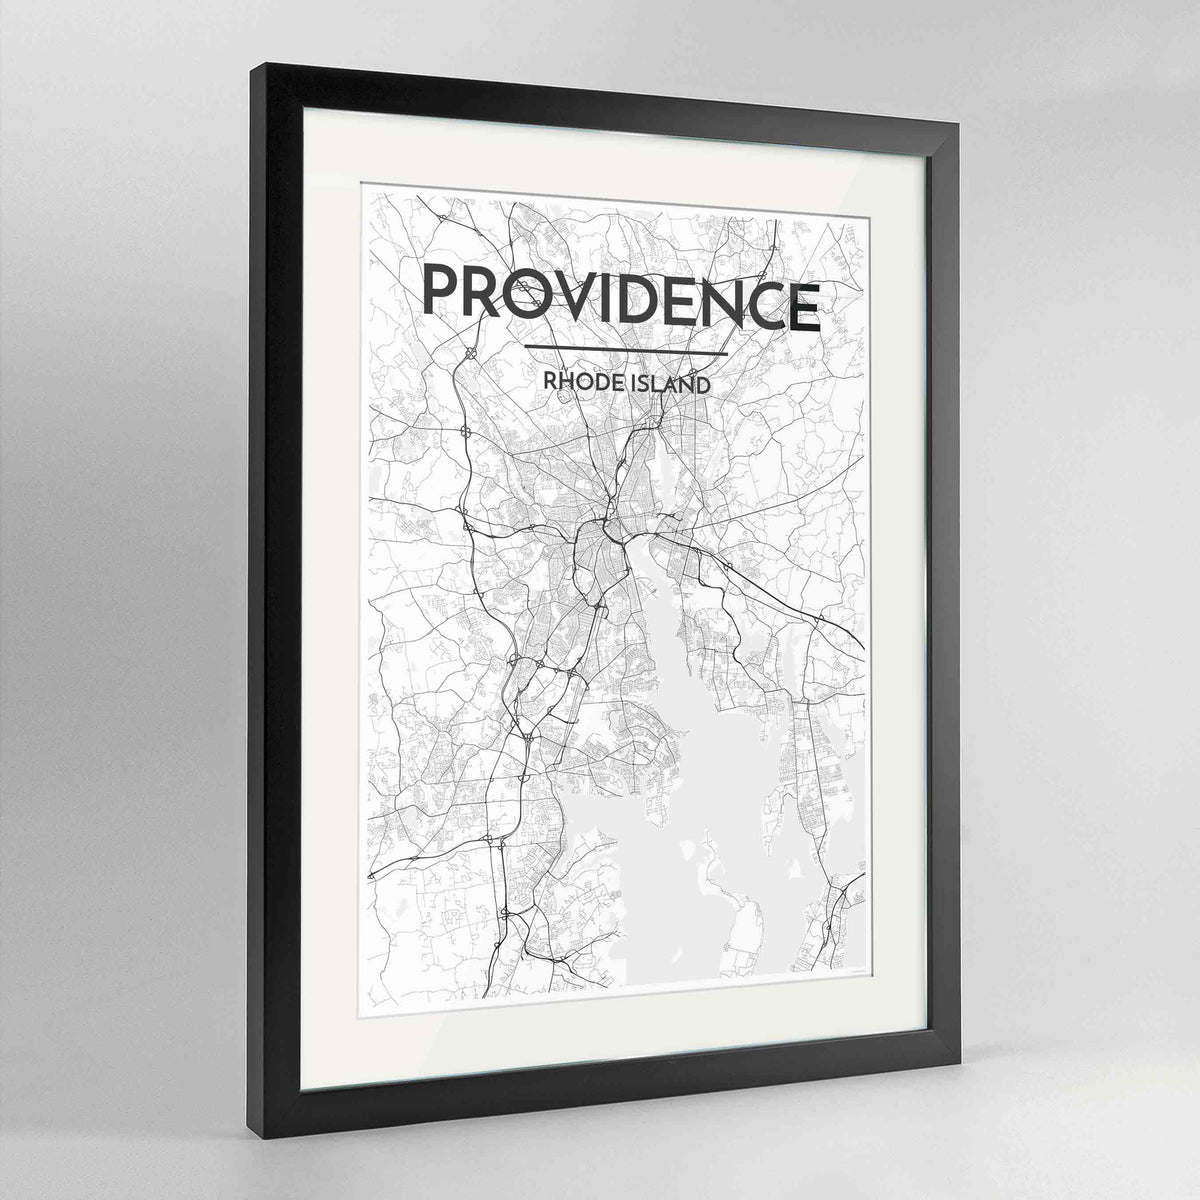 "Framed Providence Map Art Print 24x36"" Contemporary Black frame Point Two Design Group"